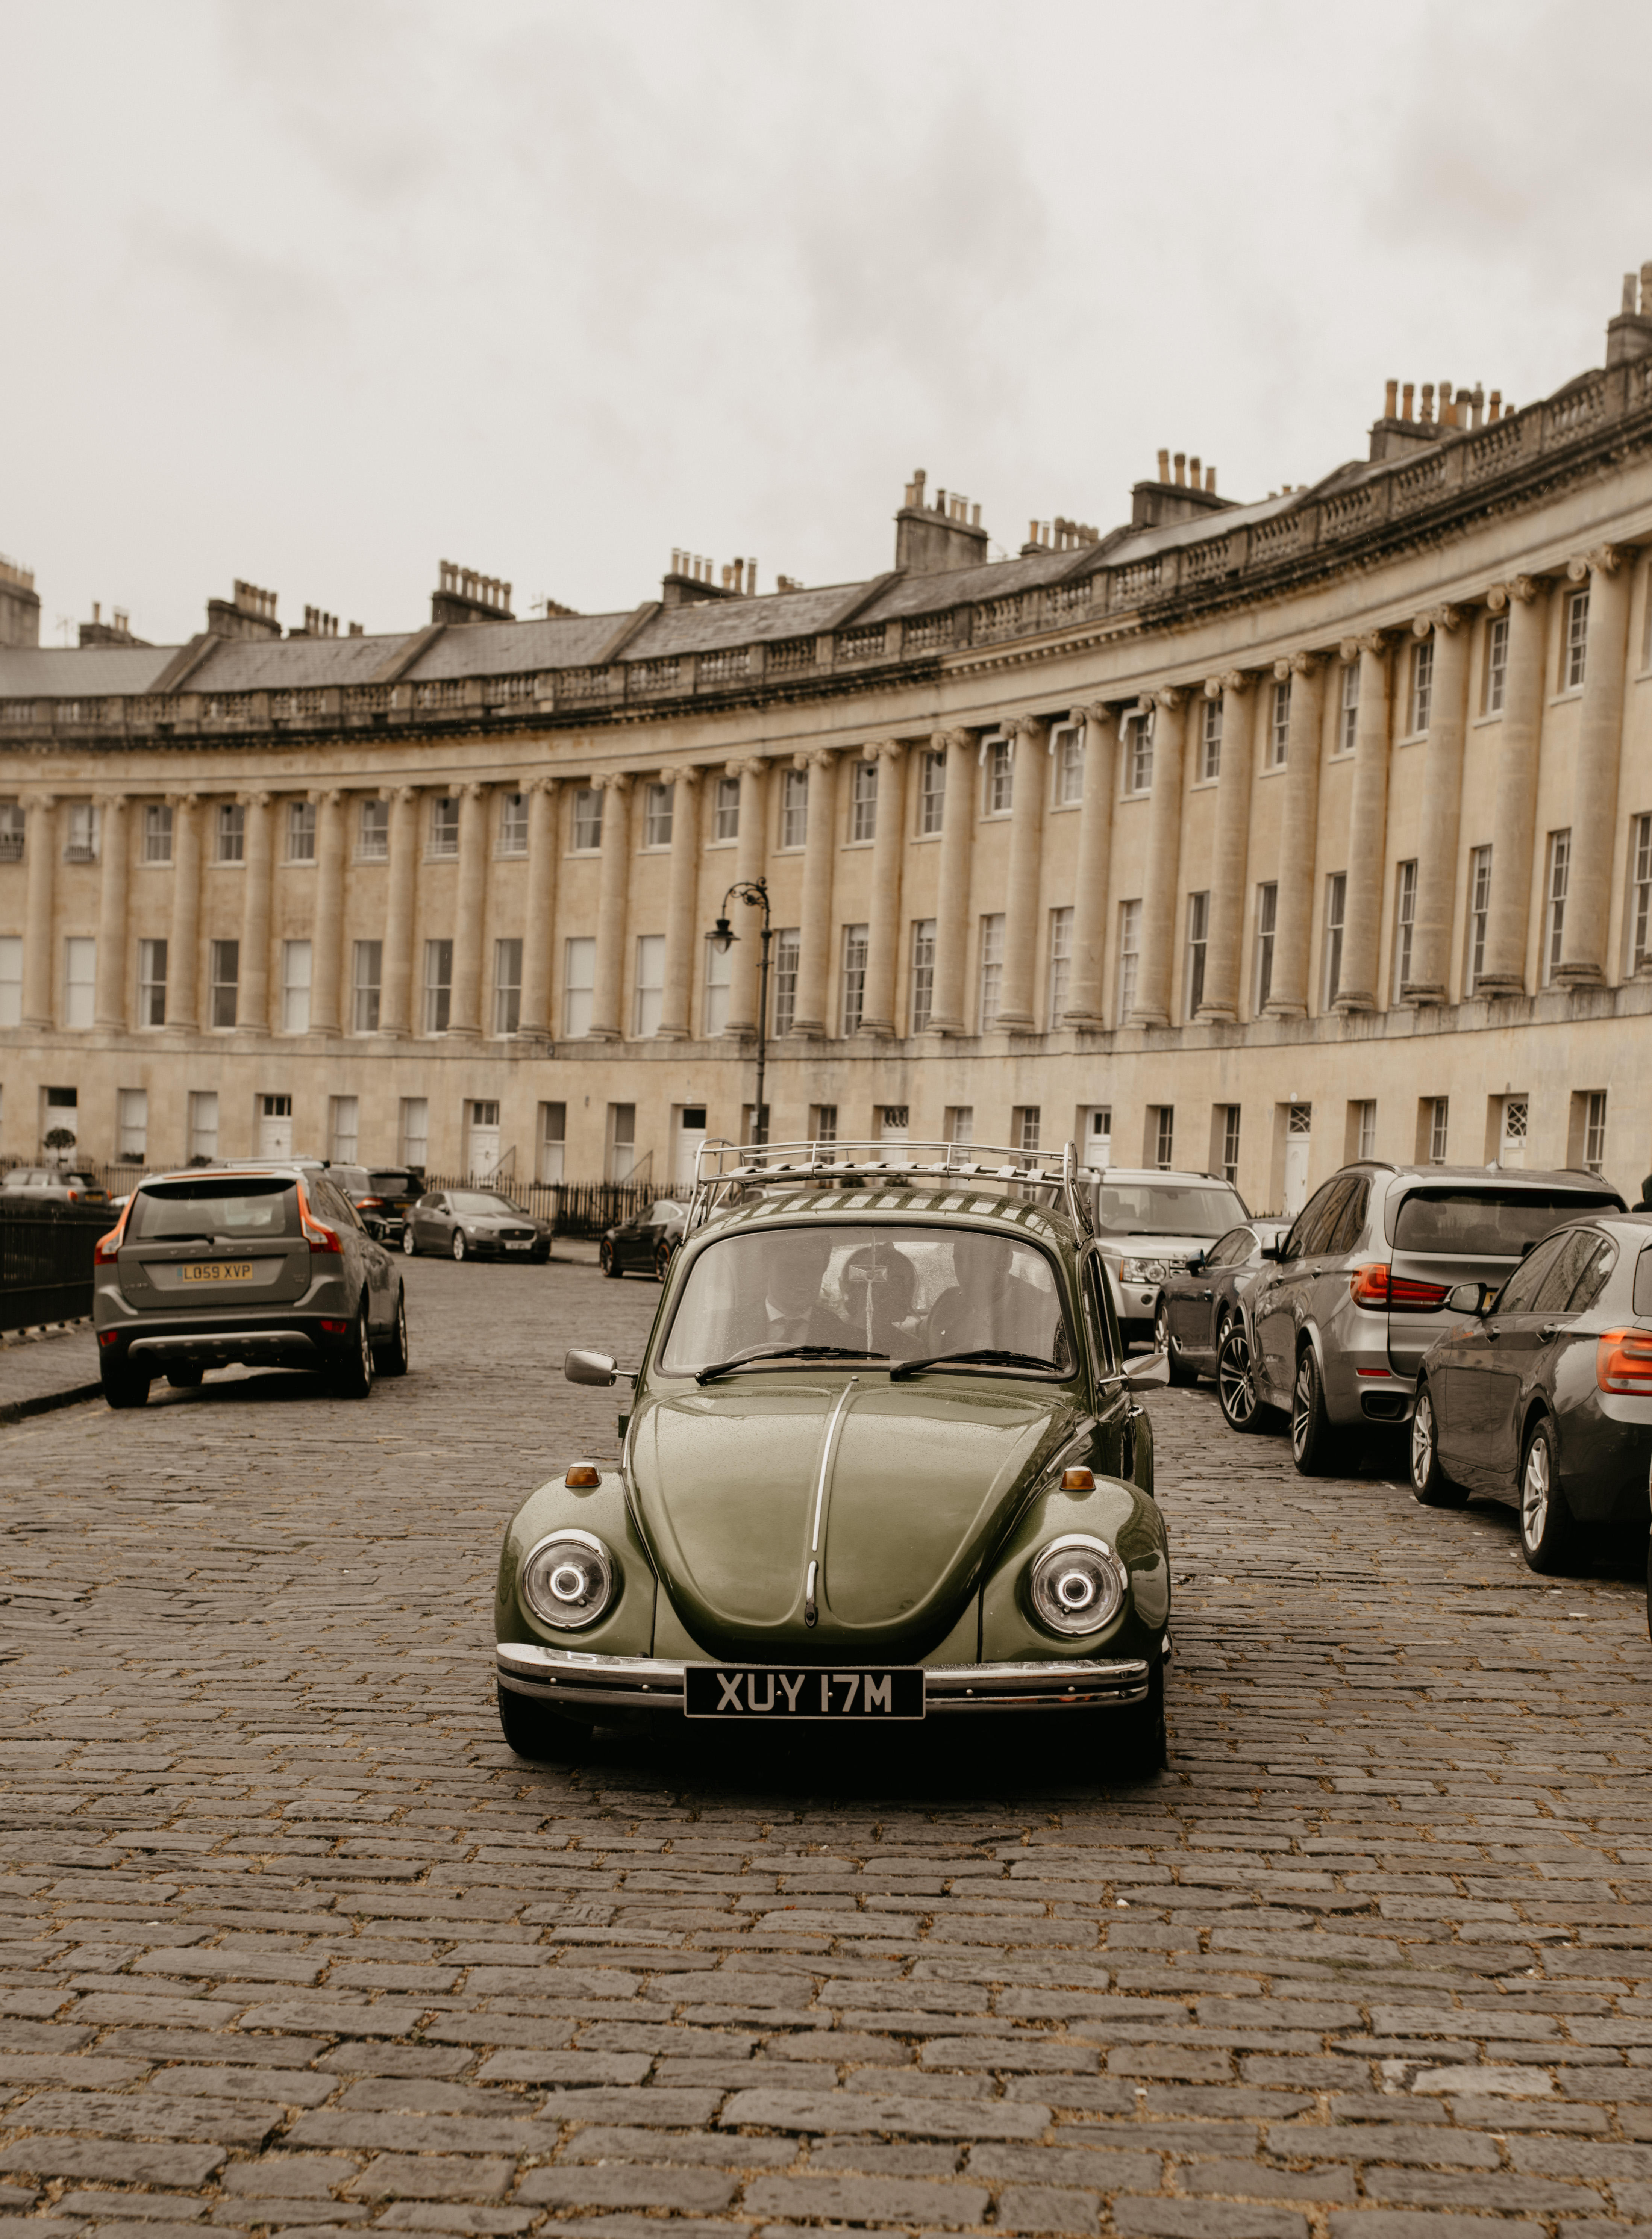 City Elopement With Bridal Jumpsuit and Vintage Wedding Car In Guildhall, Bath